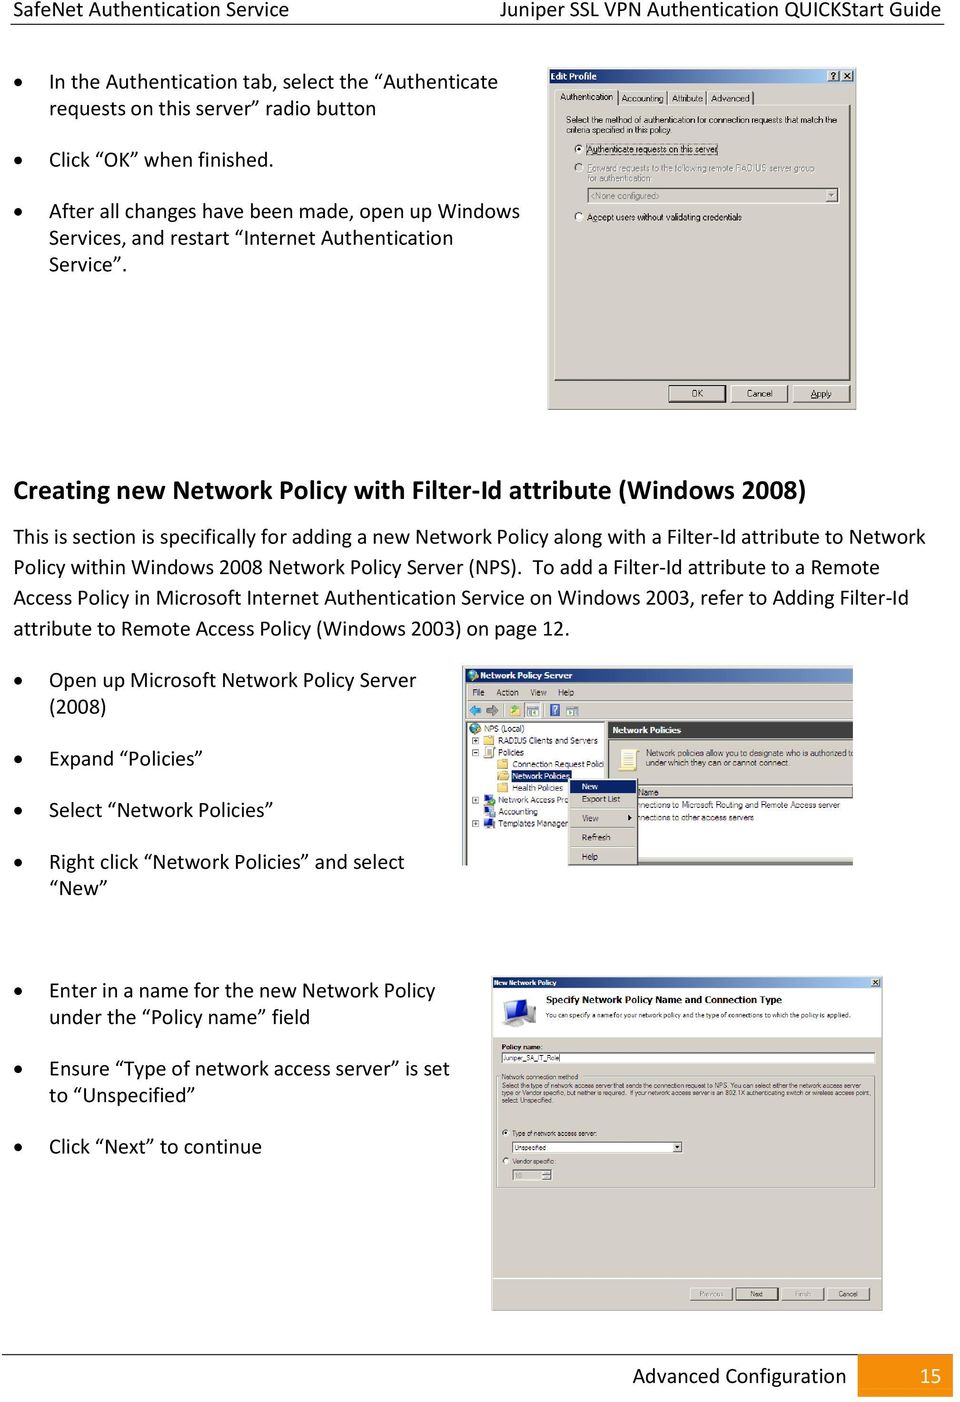 Creating new Network Policy with Filter-Id attribute (Windows 2008) This is section is specifically for adding a new Network Policy along with a Filter-Id attribute to Network Policy within Windows